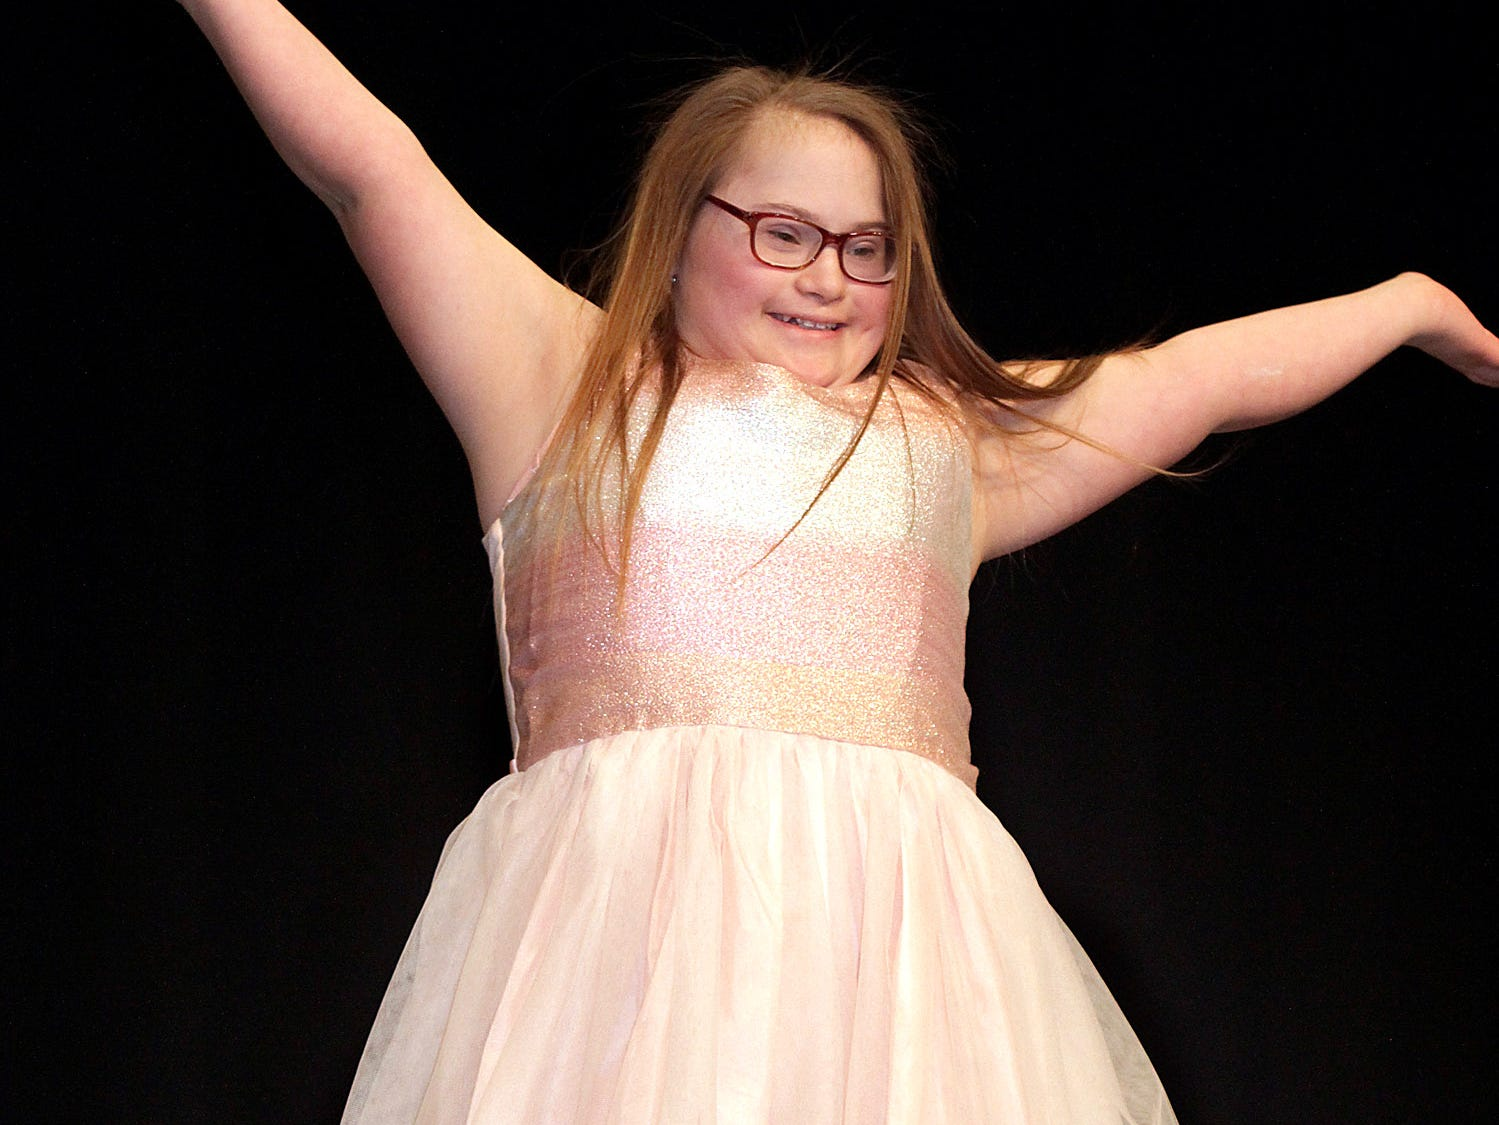 Caroline Moore (13) shows off her dance moves at The Sparkle Pageant at Pope John Paul II High School on Saturday, March 30, 2019.